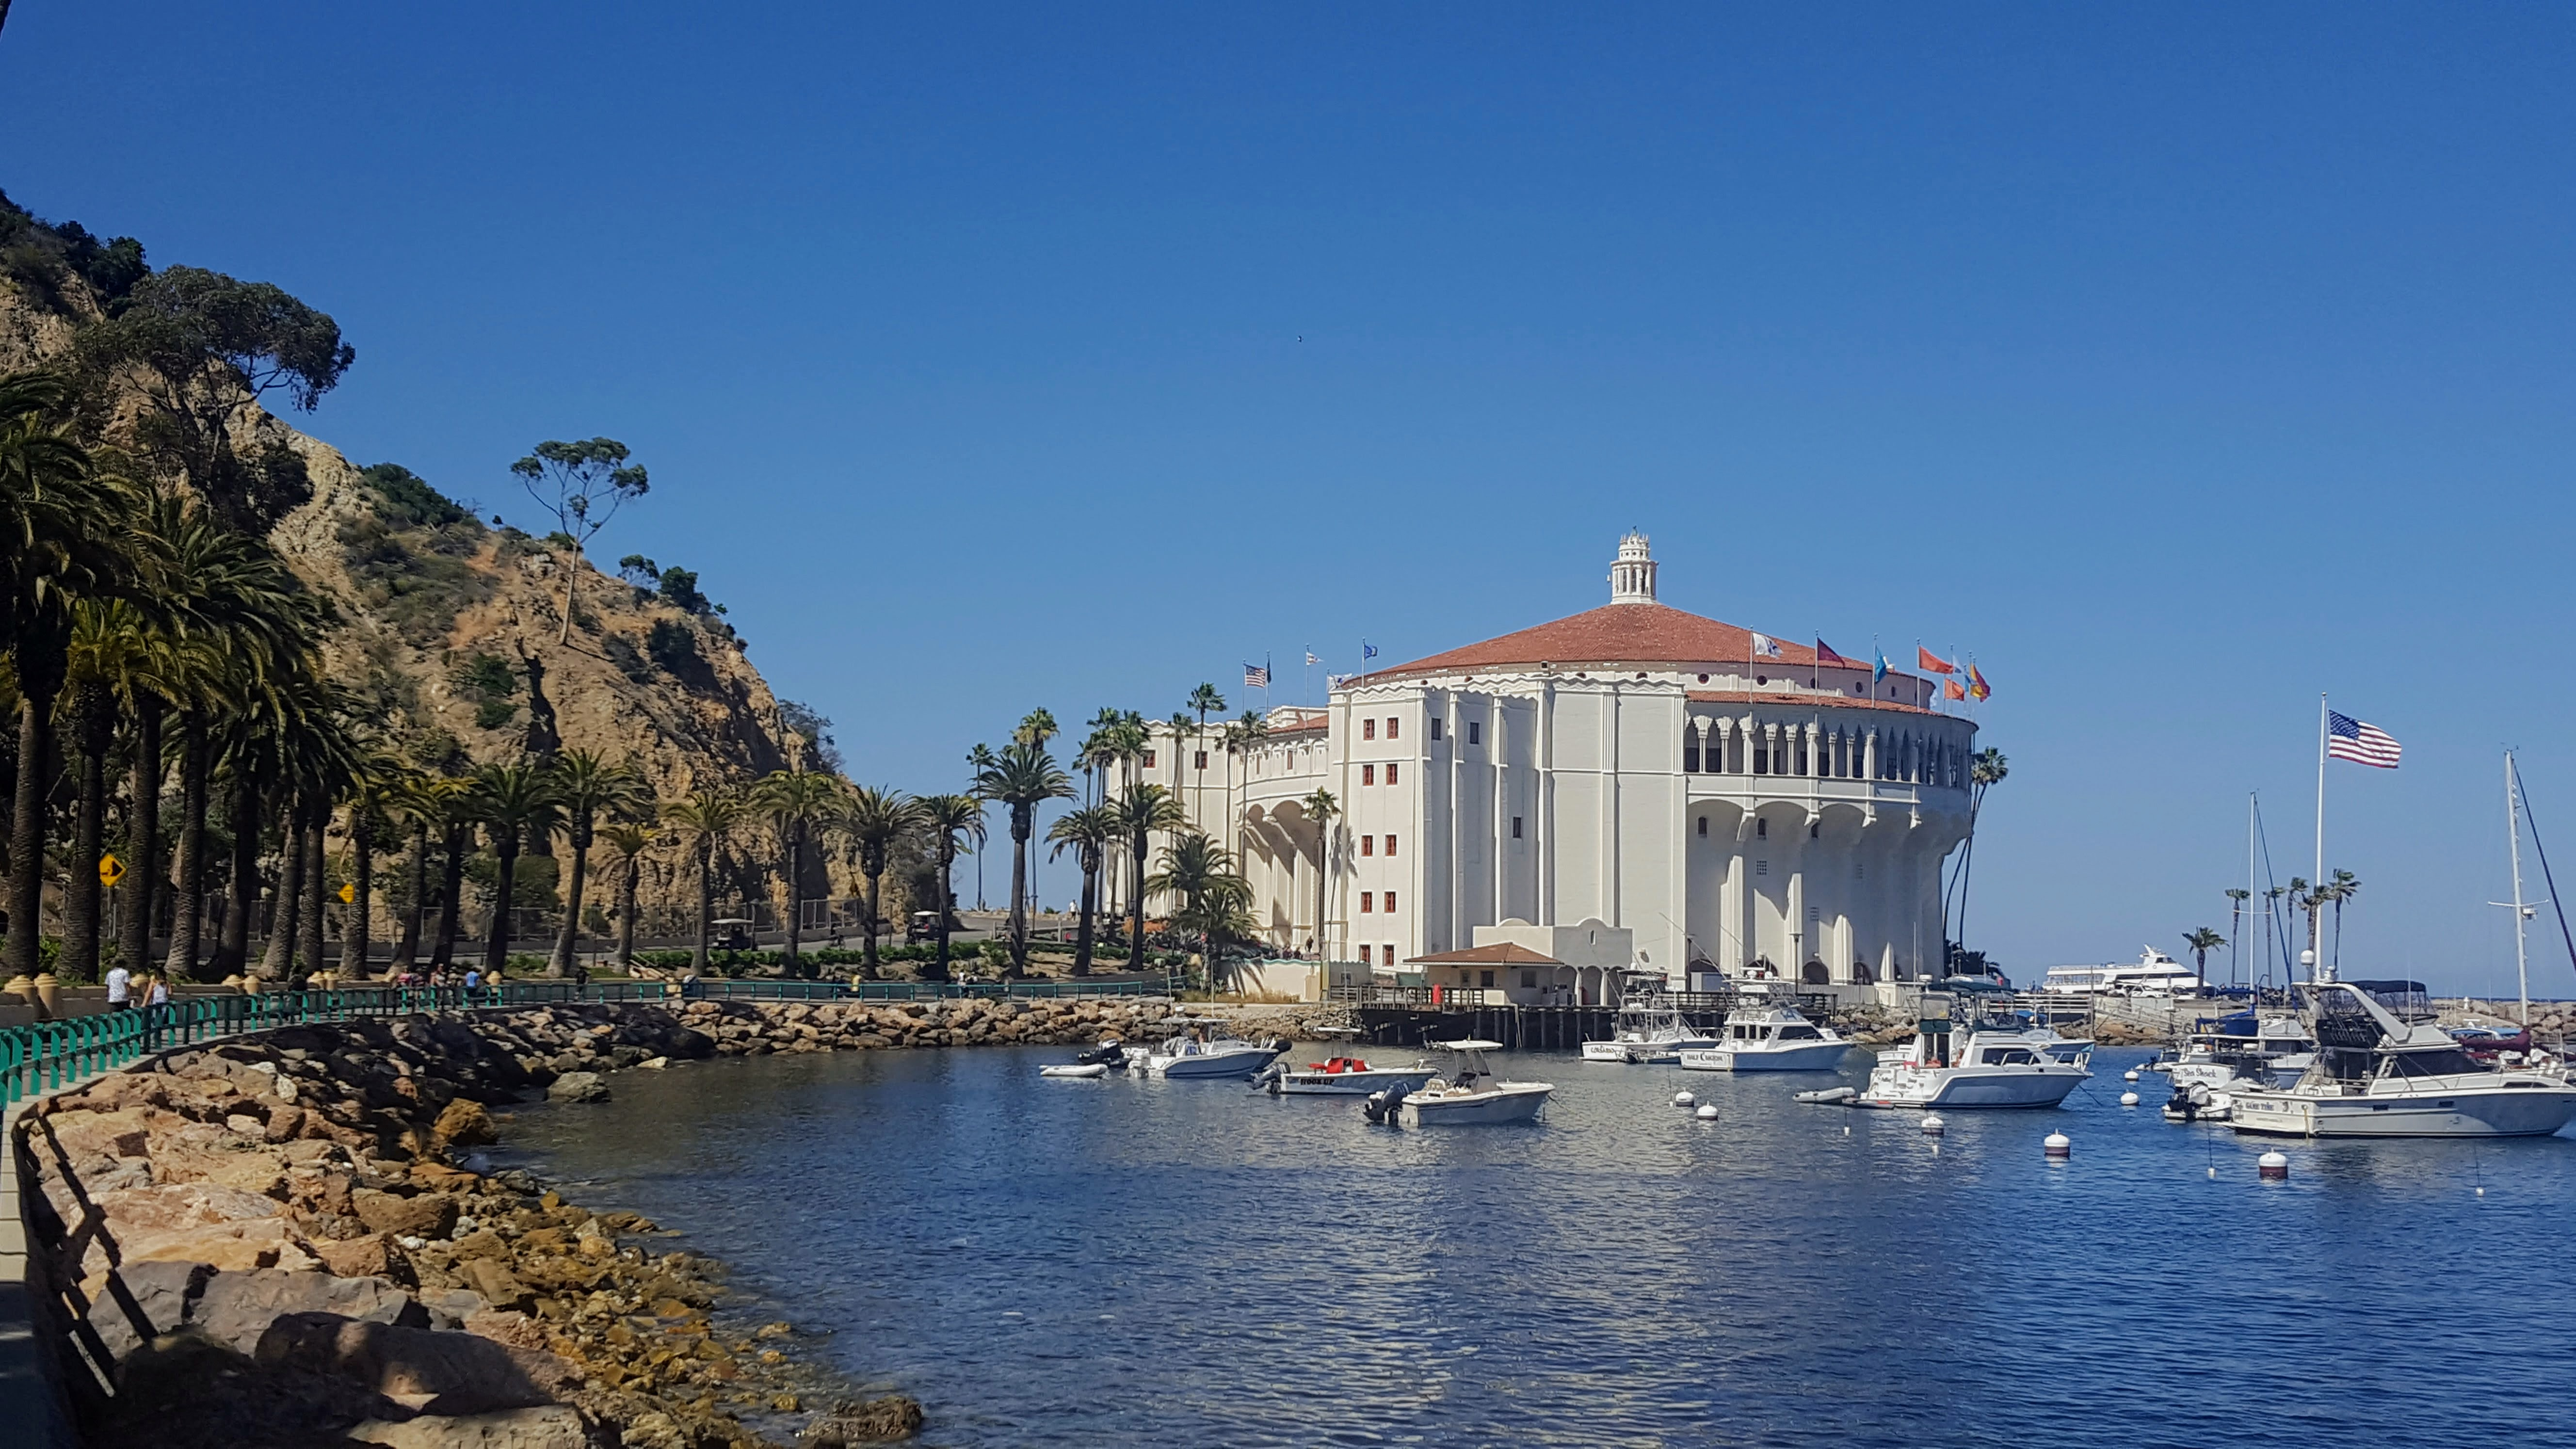 How to Celebrate your Birthday on Catalina Island